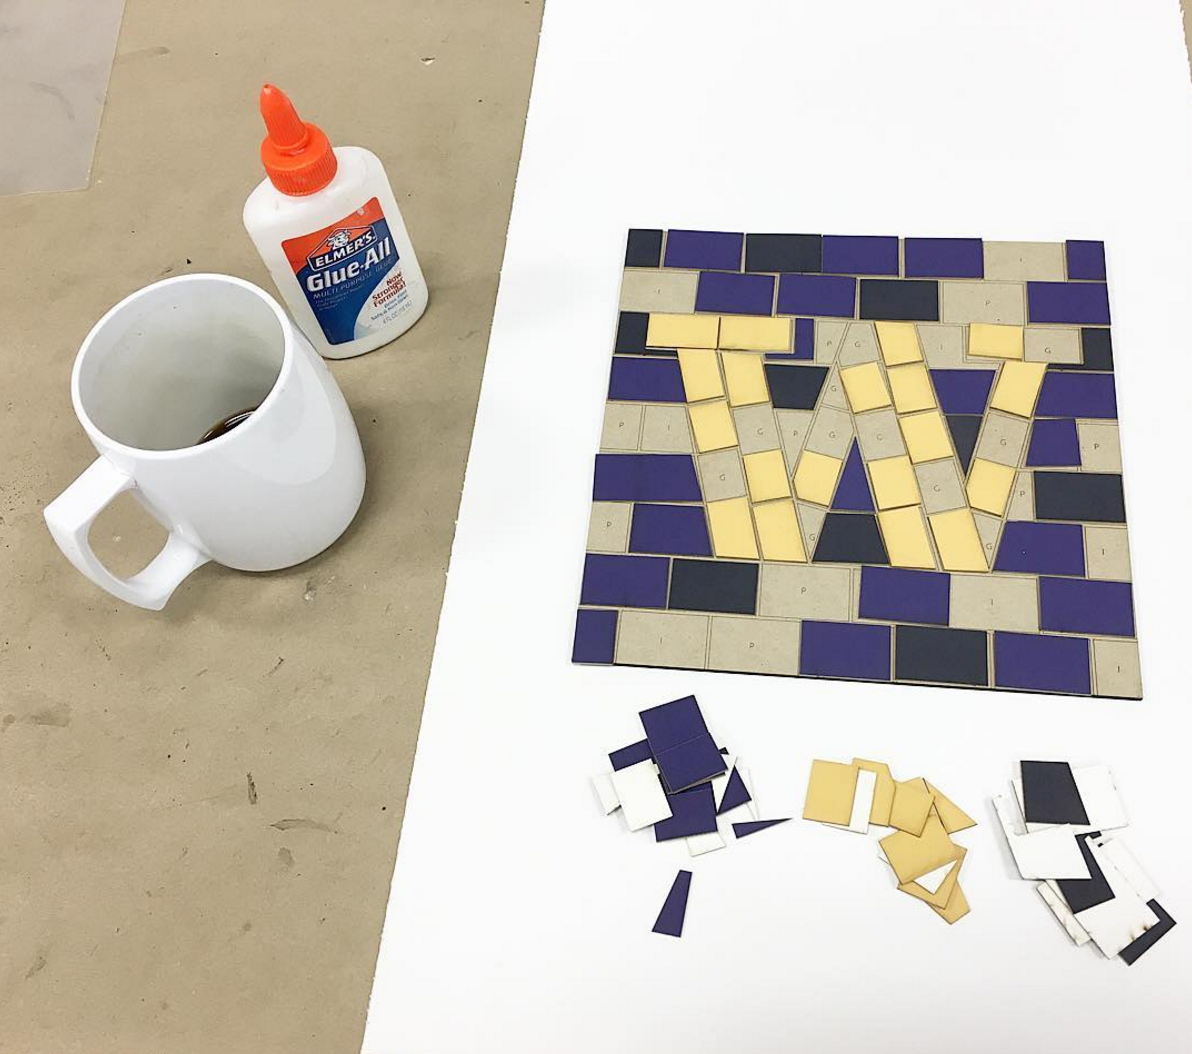 A prototype of a Tieton Mosaic activity for the event